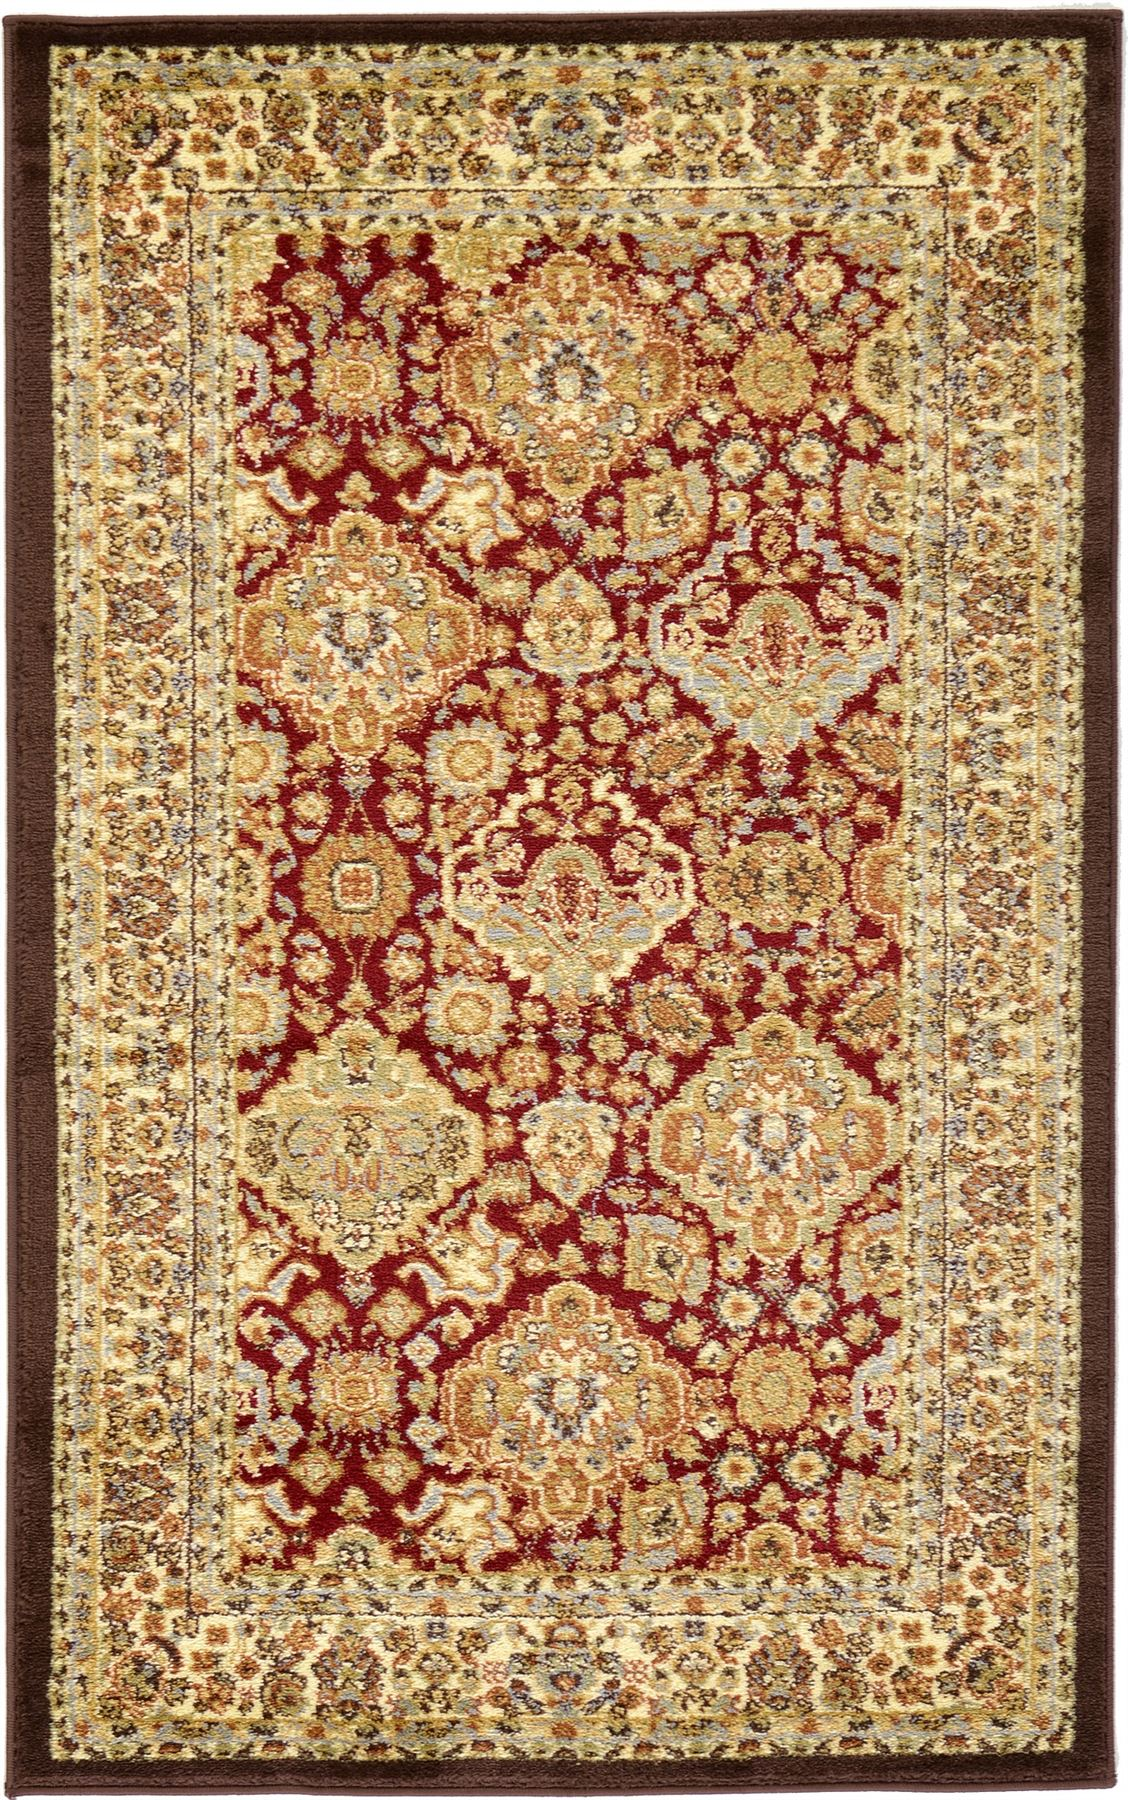 traditional rug persian oriental area rug carpet classic. Black Bedroom Furniture Sets. Home Design Ideas